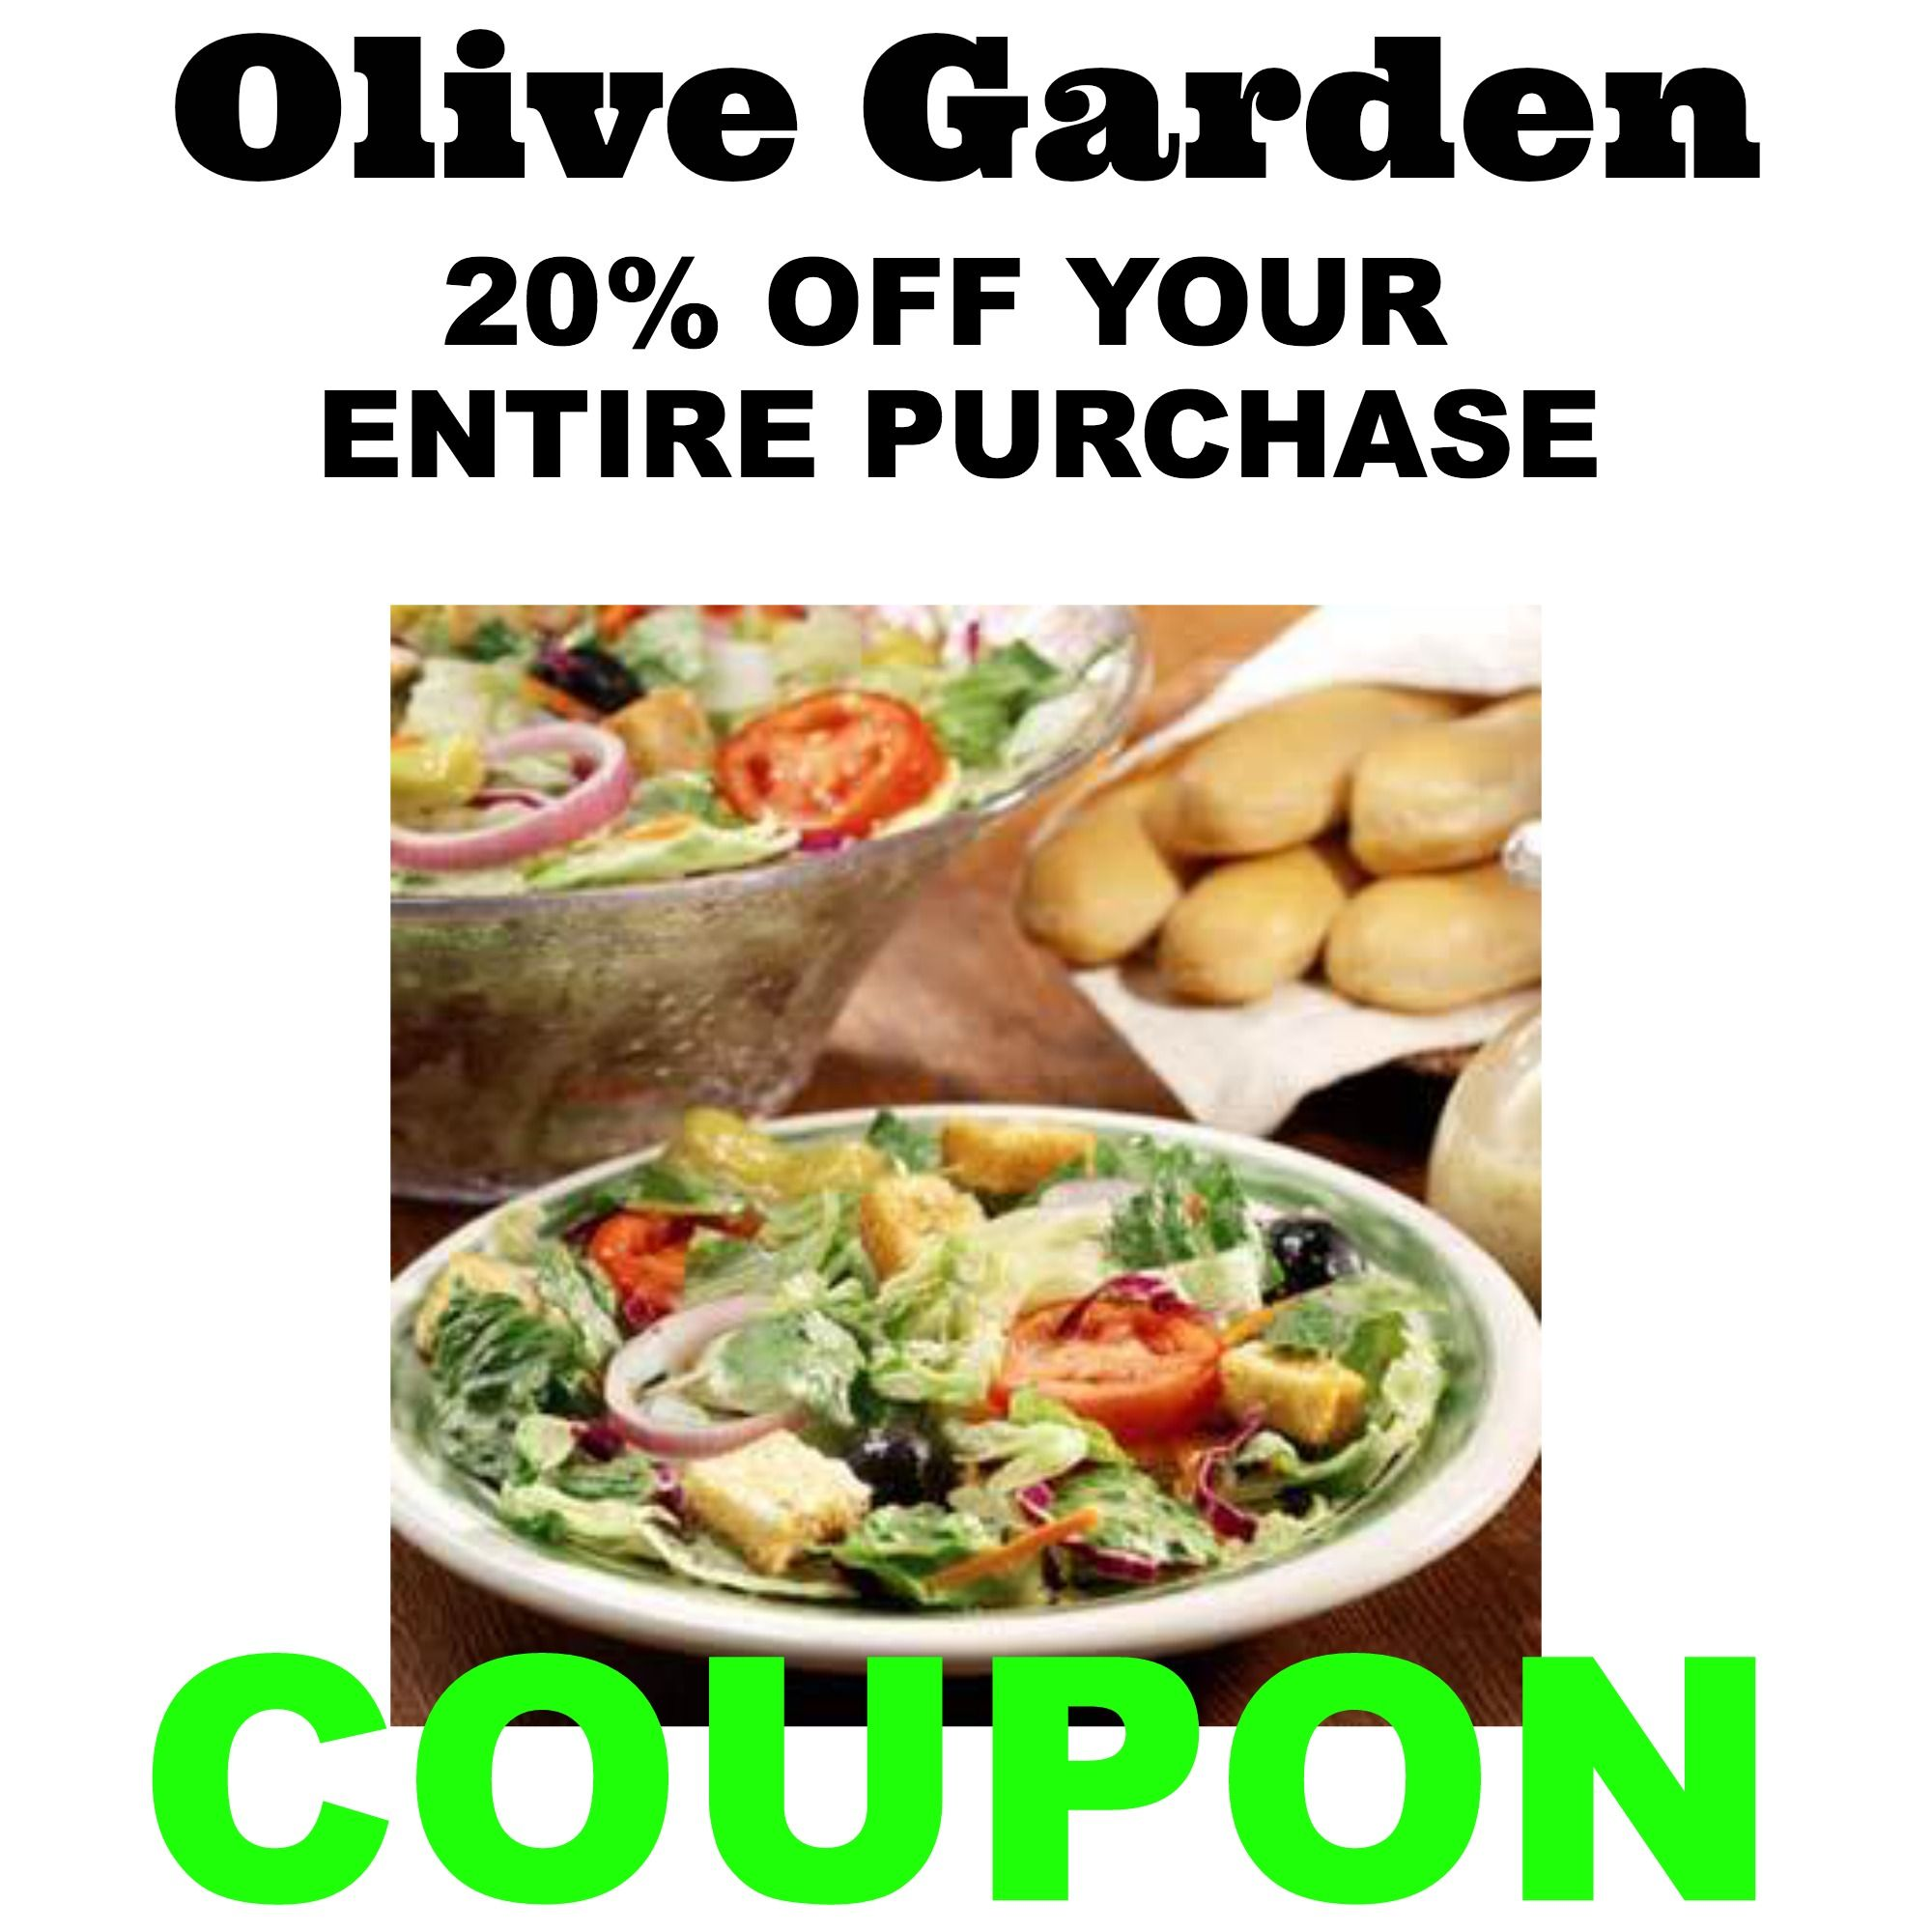 deals at olive garden. Olive Garden Coupons And Discounts Are Available To Help You Save Money When Dining At An Deals